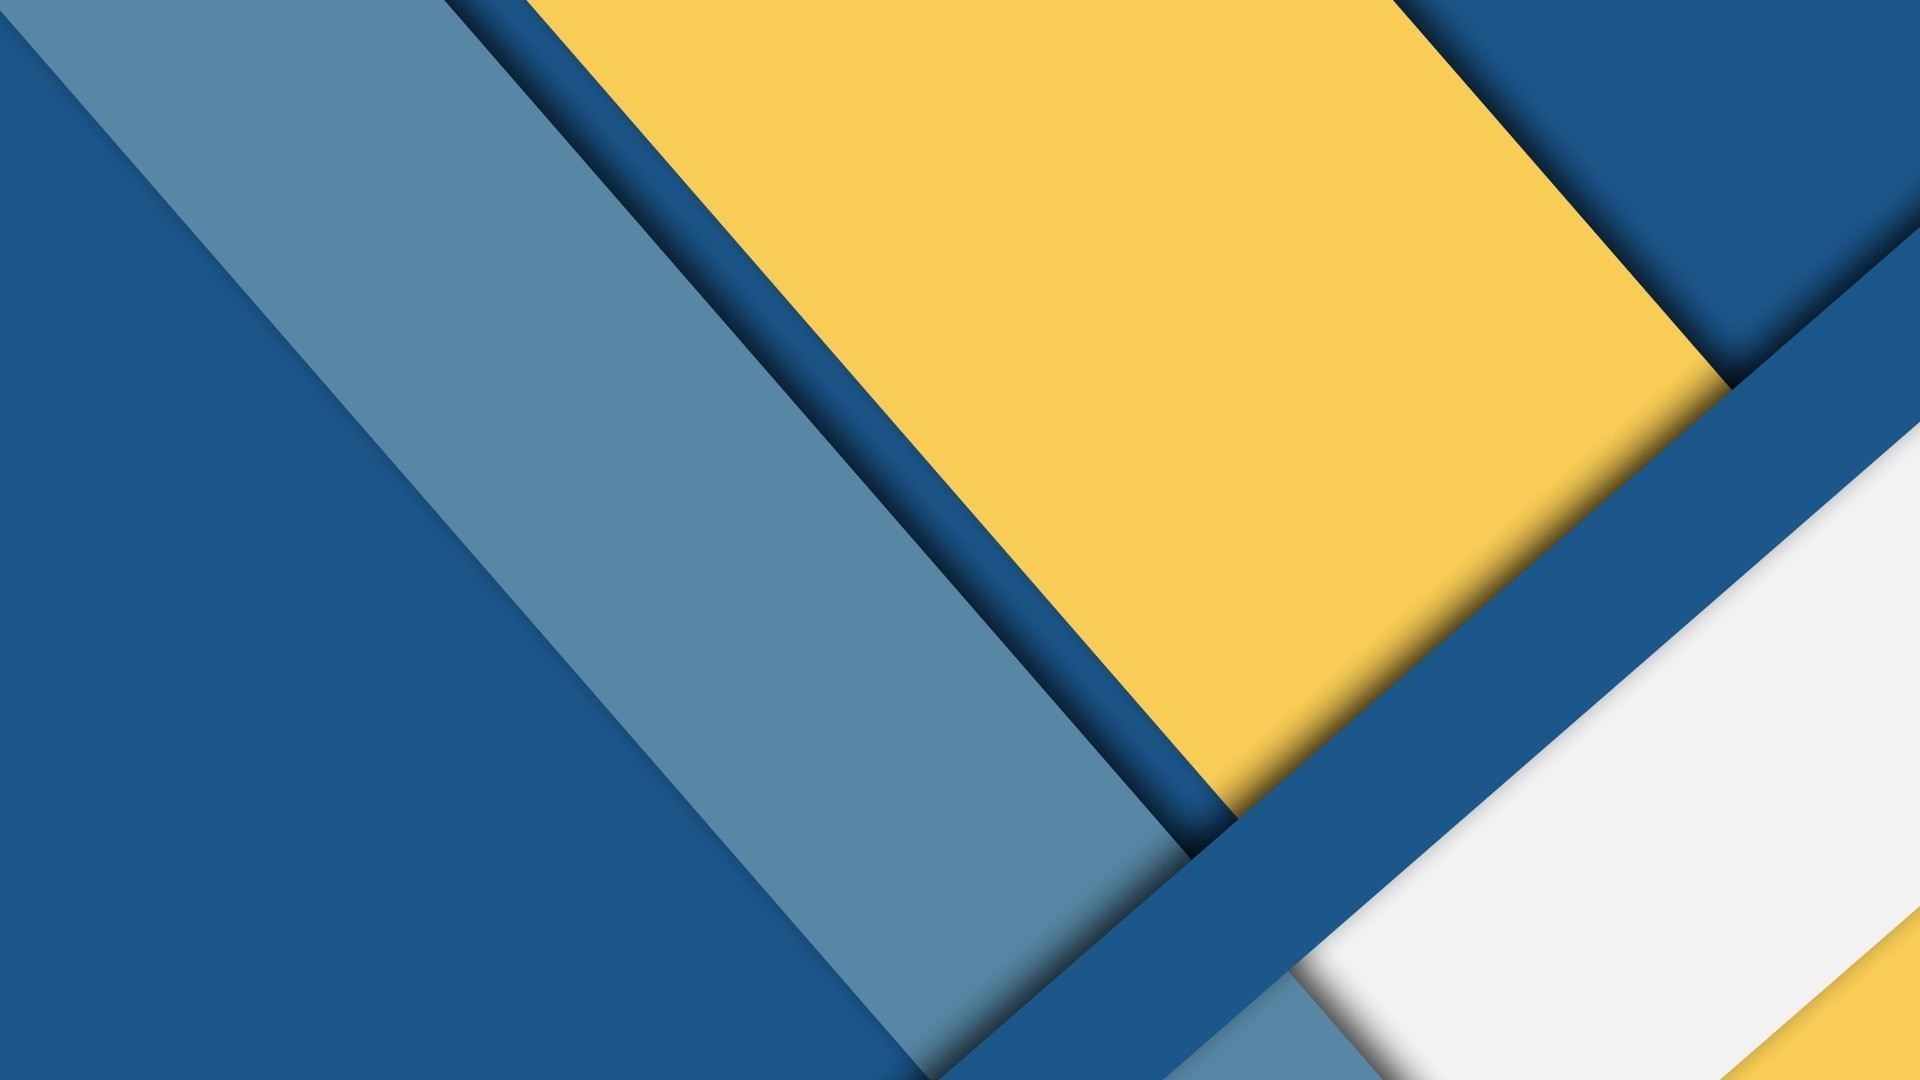 Blue And Yellow PC Wallpaper HD